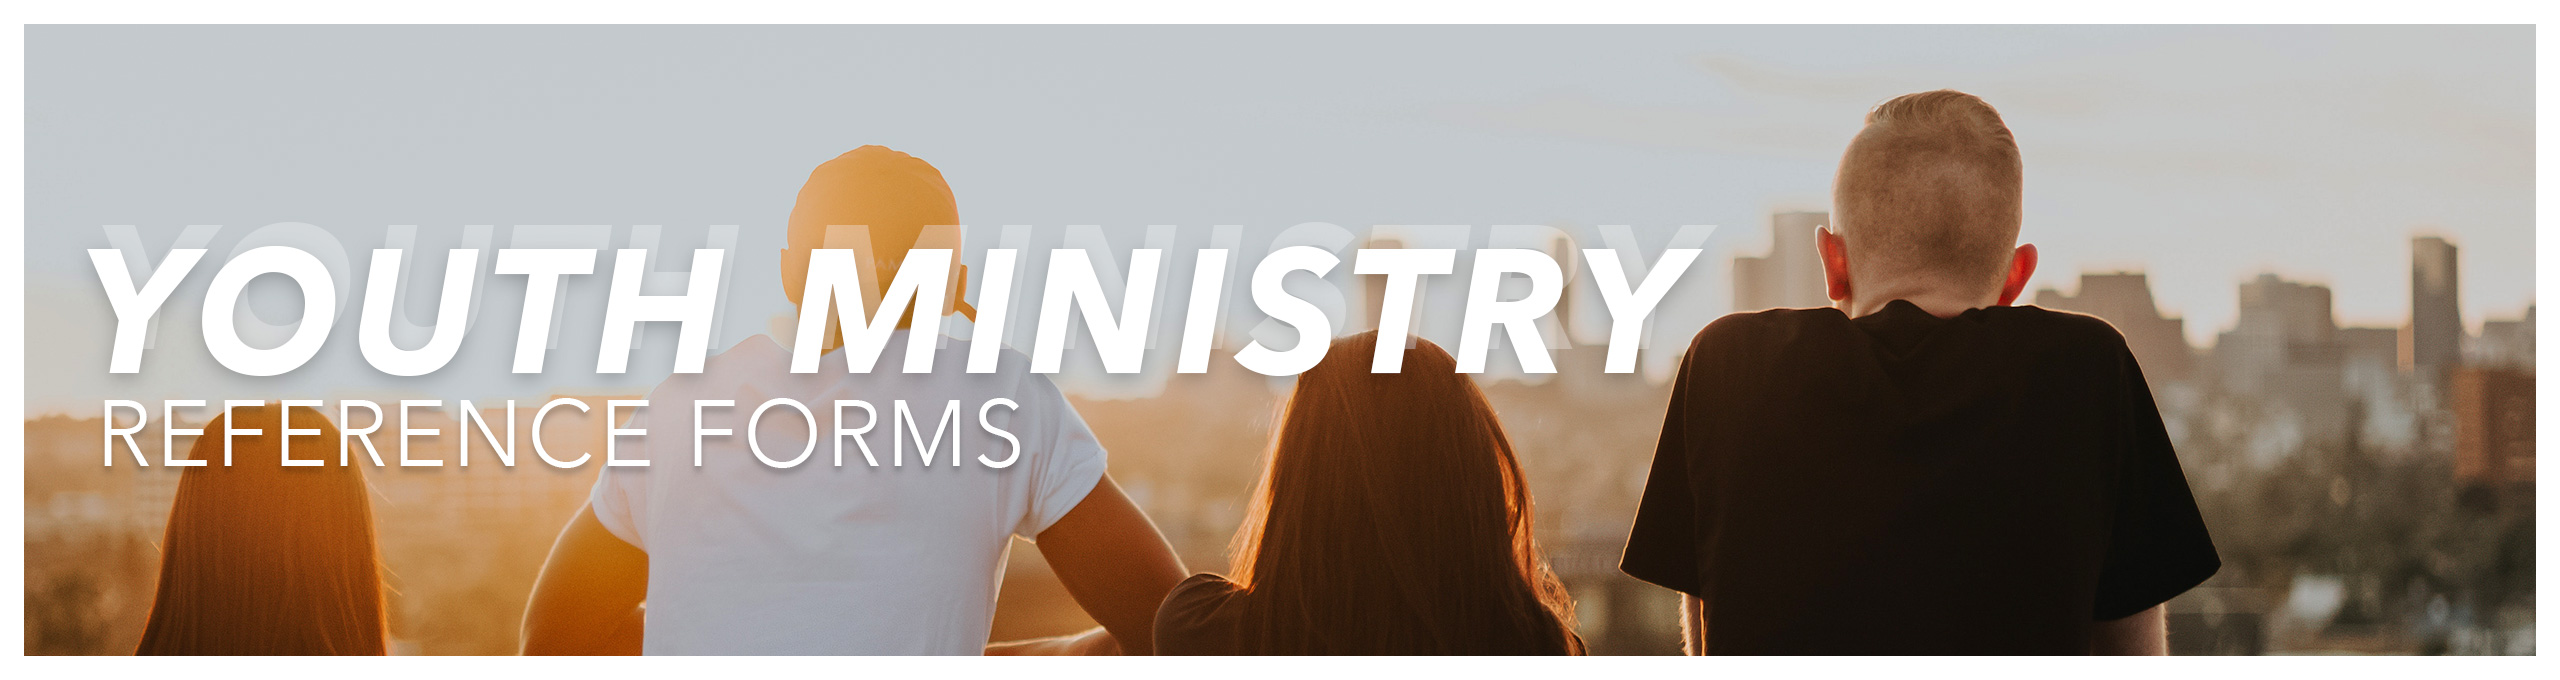 Youth Ministry Reference Form